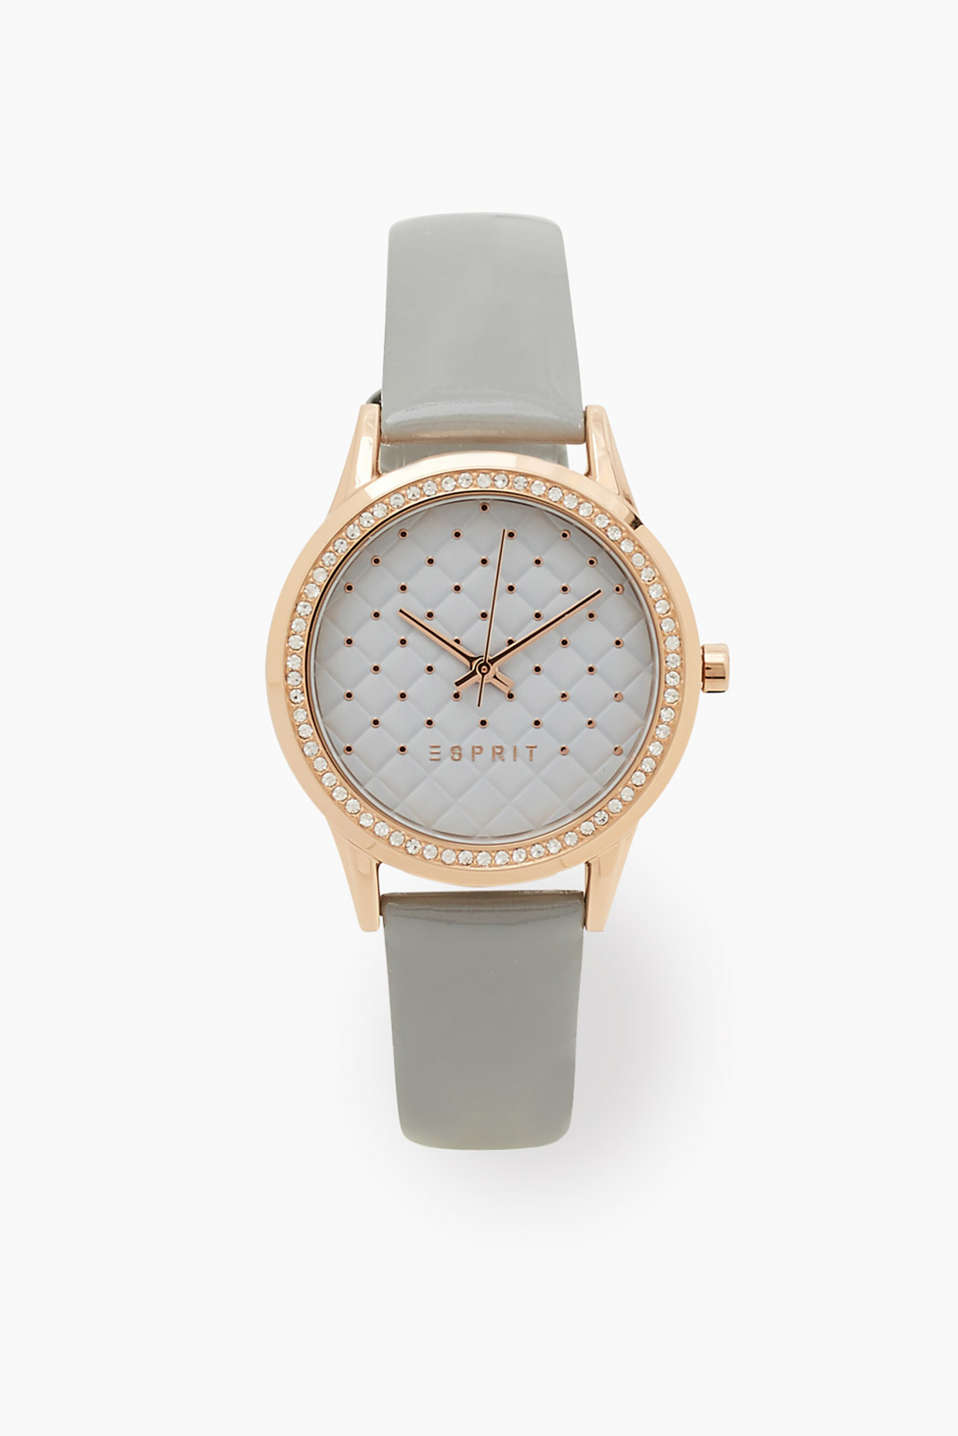 Stunning, trendy stainless steel watch in a rose gold shade with a striking dial and a zirconia-trimmed bezel